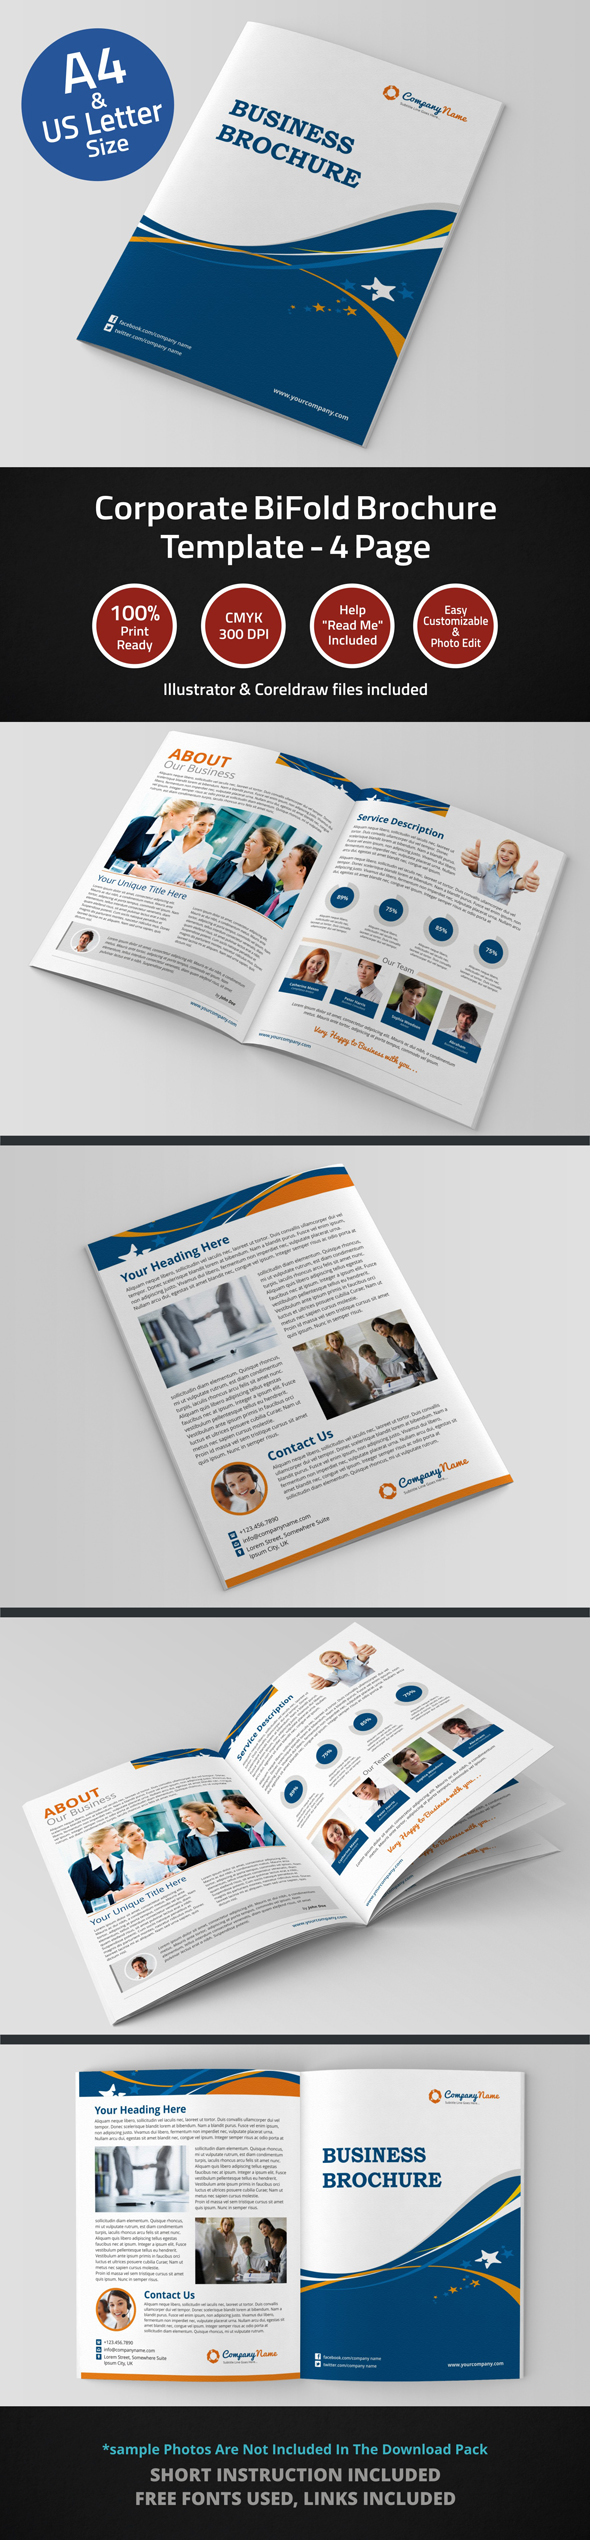 Page Corporate BiFold Brochure Template On Behance - 4 page brochure template